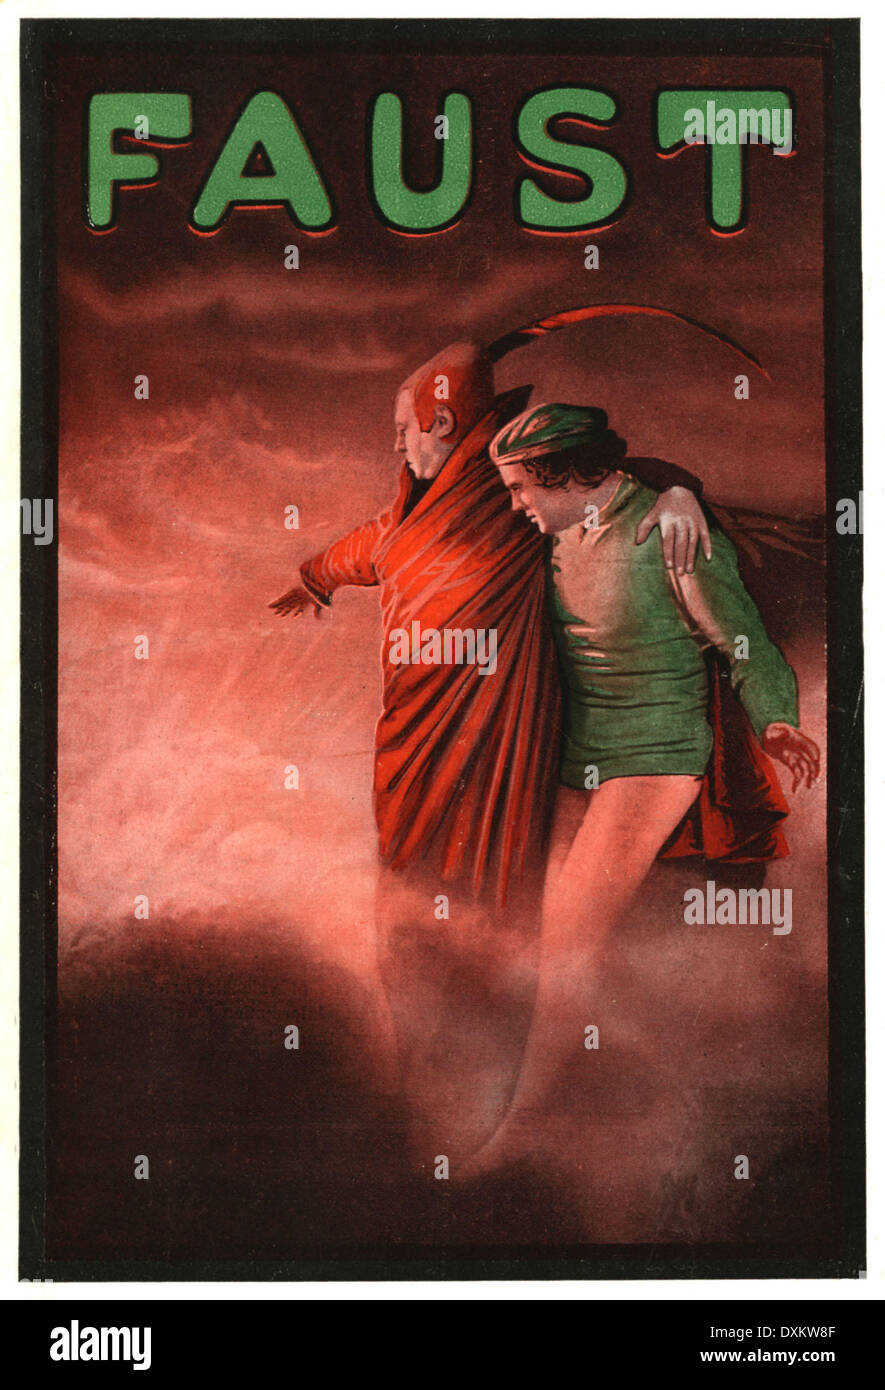 FAUST - Stock Image